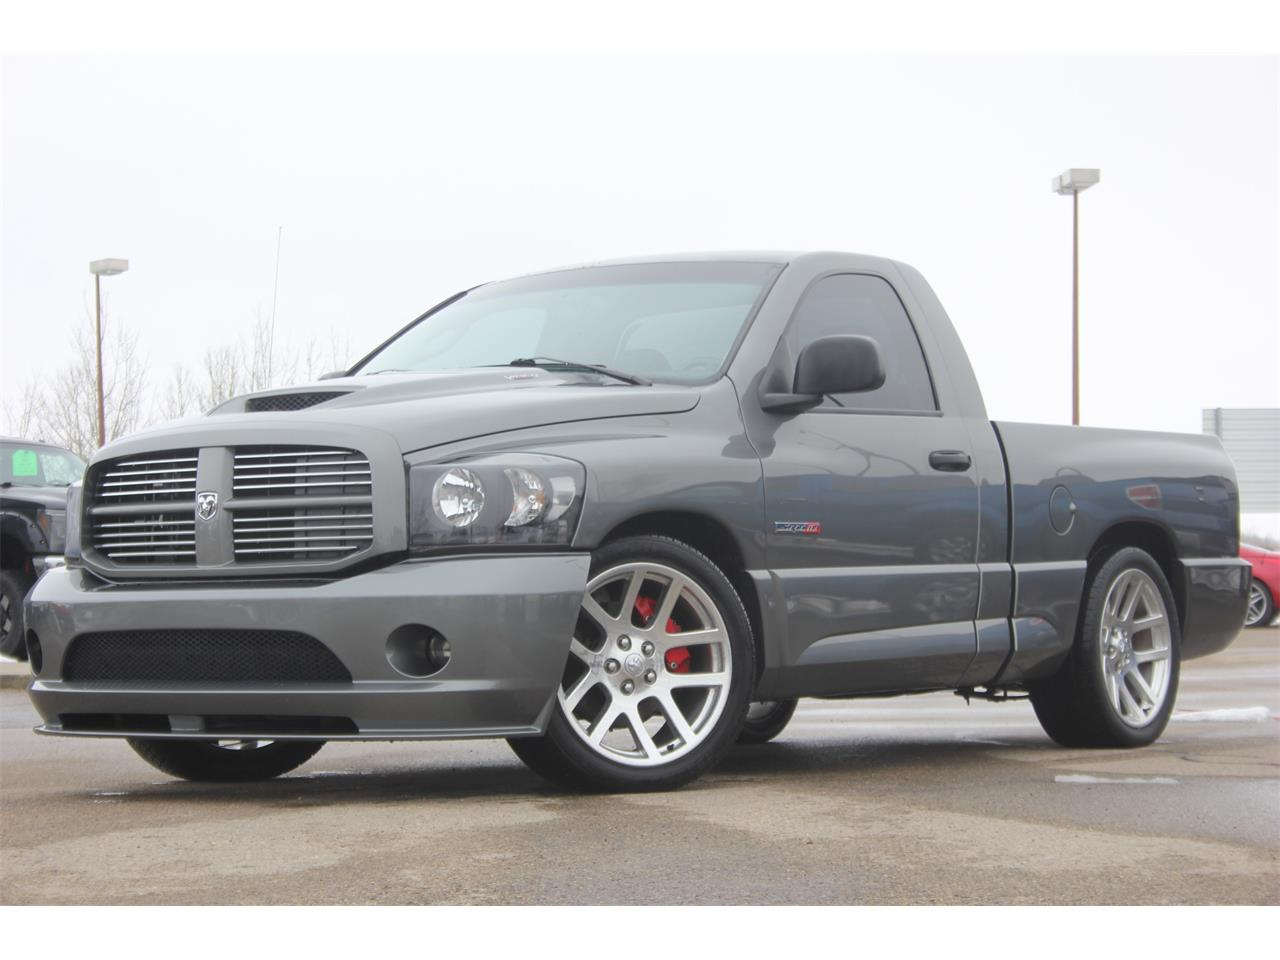 Srt10 For Sale >> For Sale 2006 Dodge Srt10 In Sylvan Lake Alberta